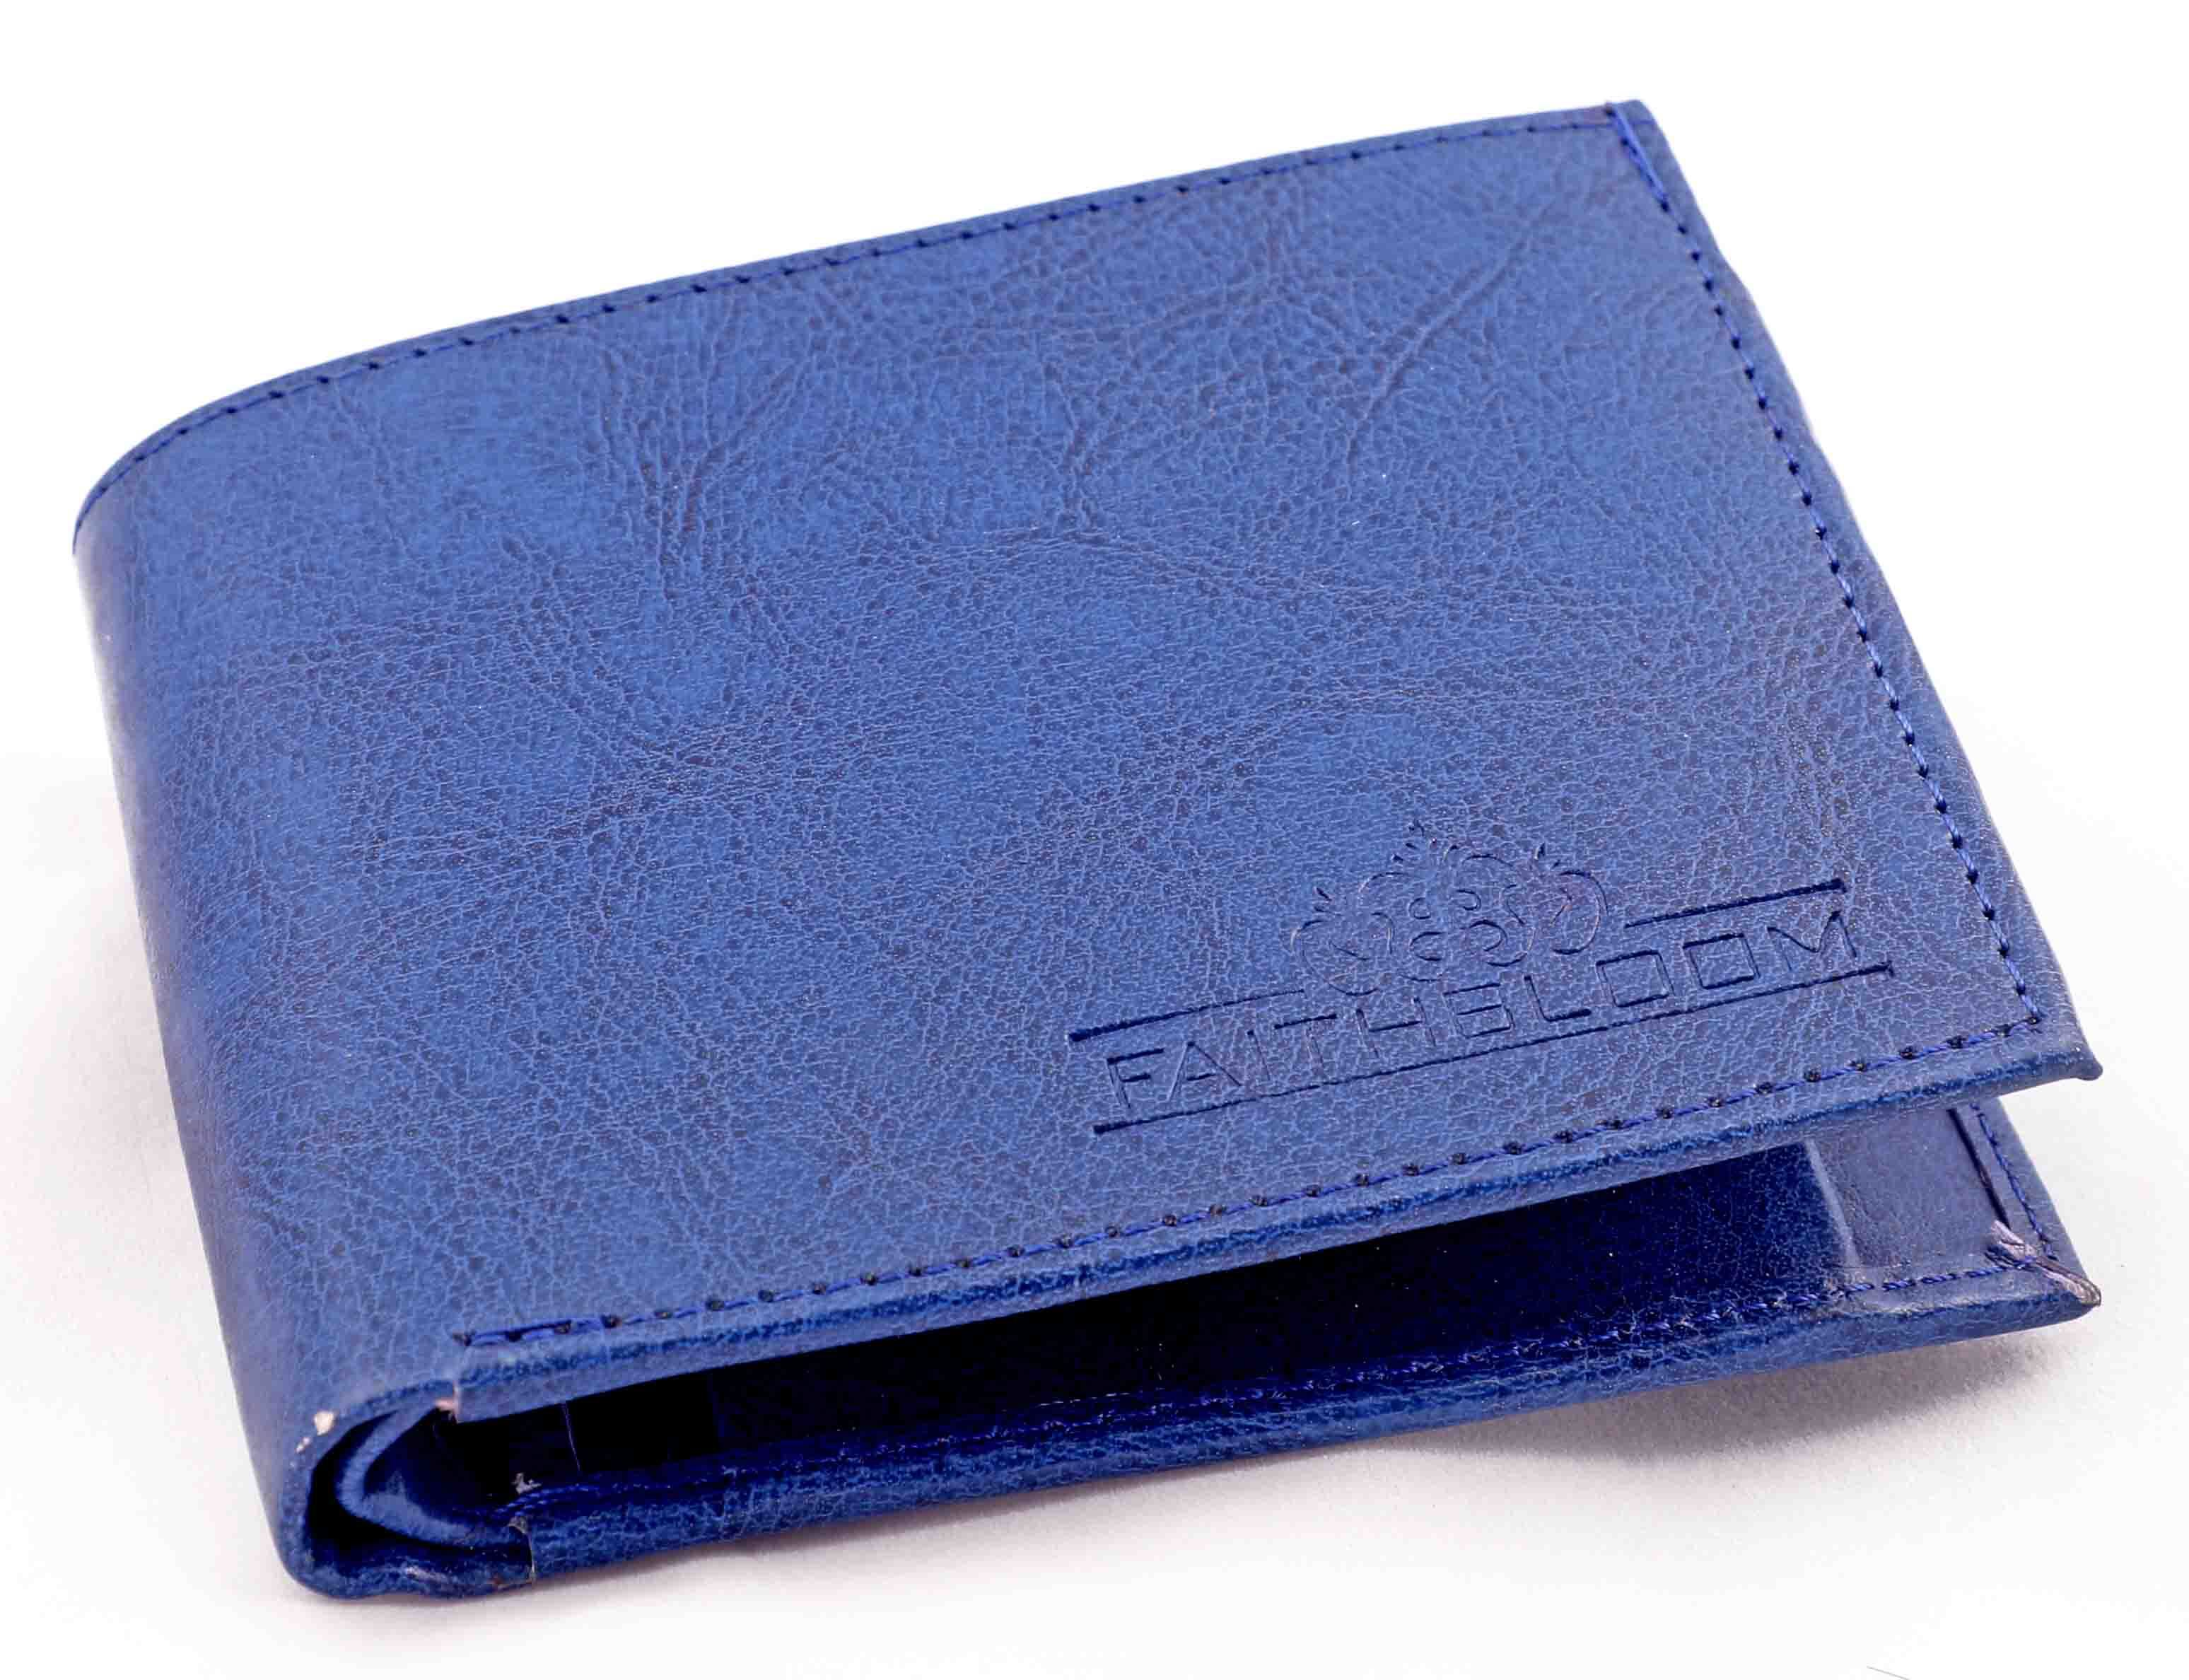 Gents blue wallet